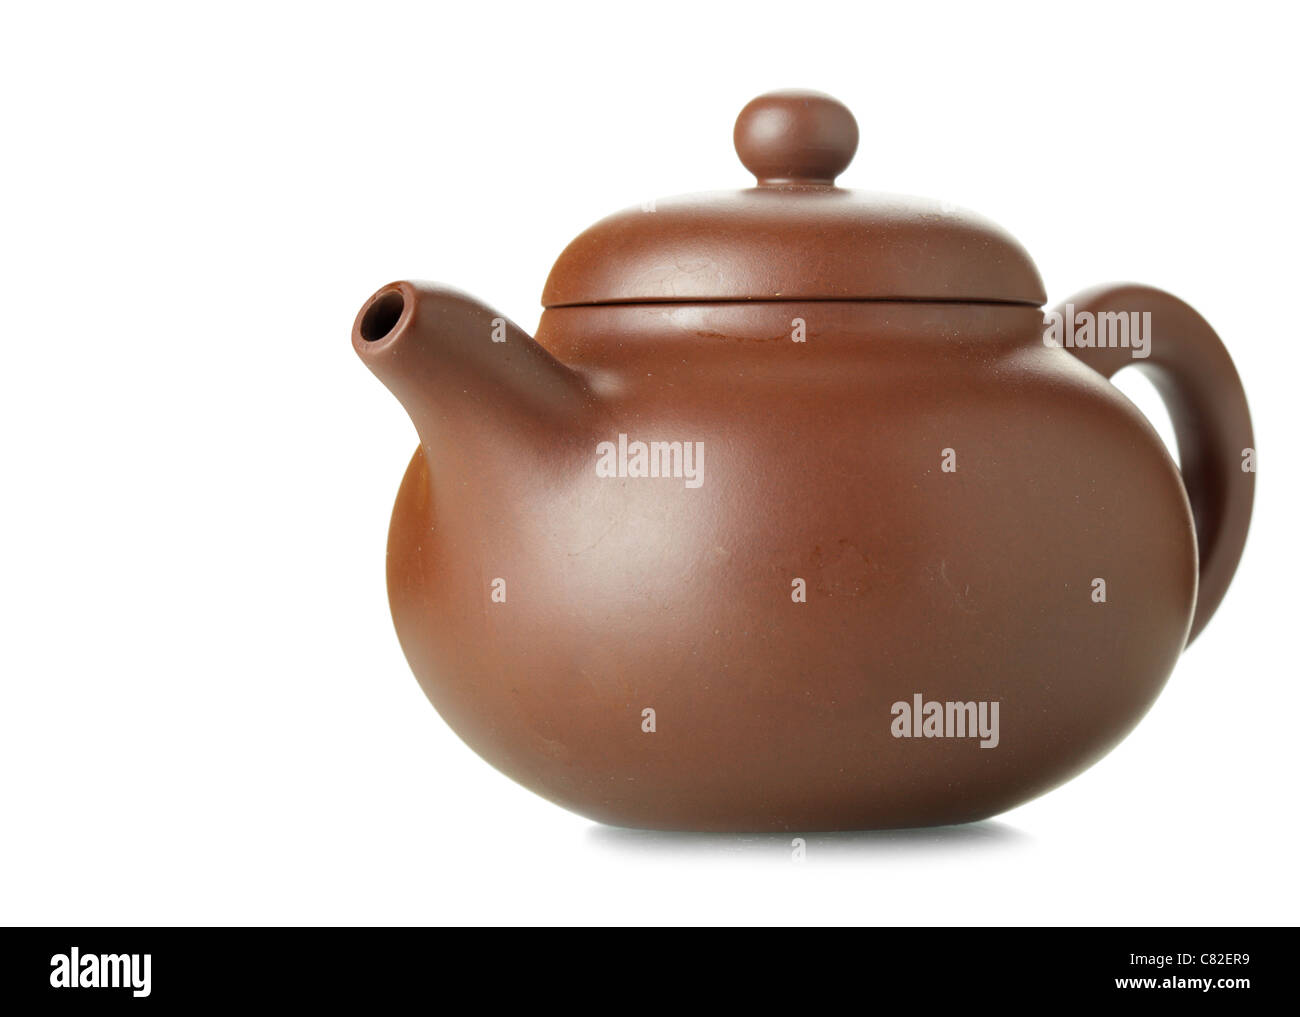 Chinese clay teapot isolated over the white background  - Stock Image